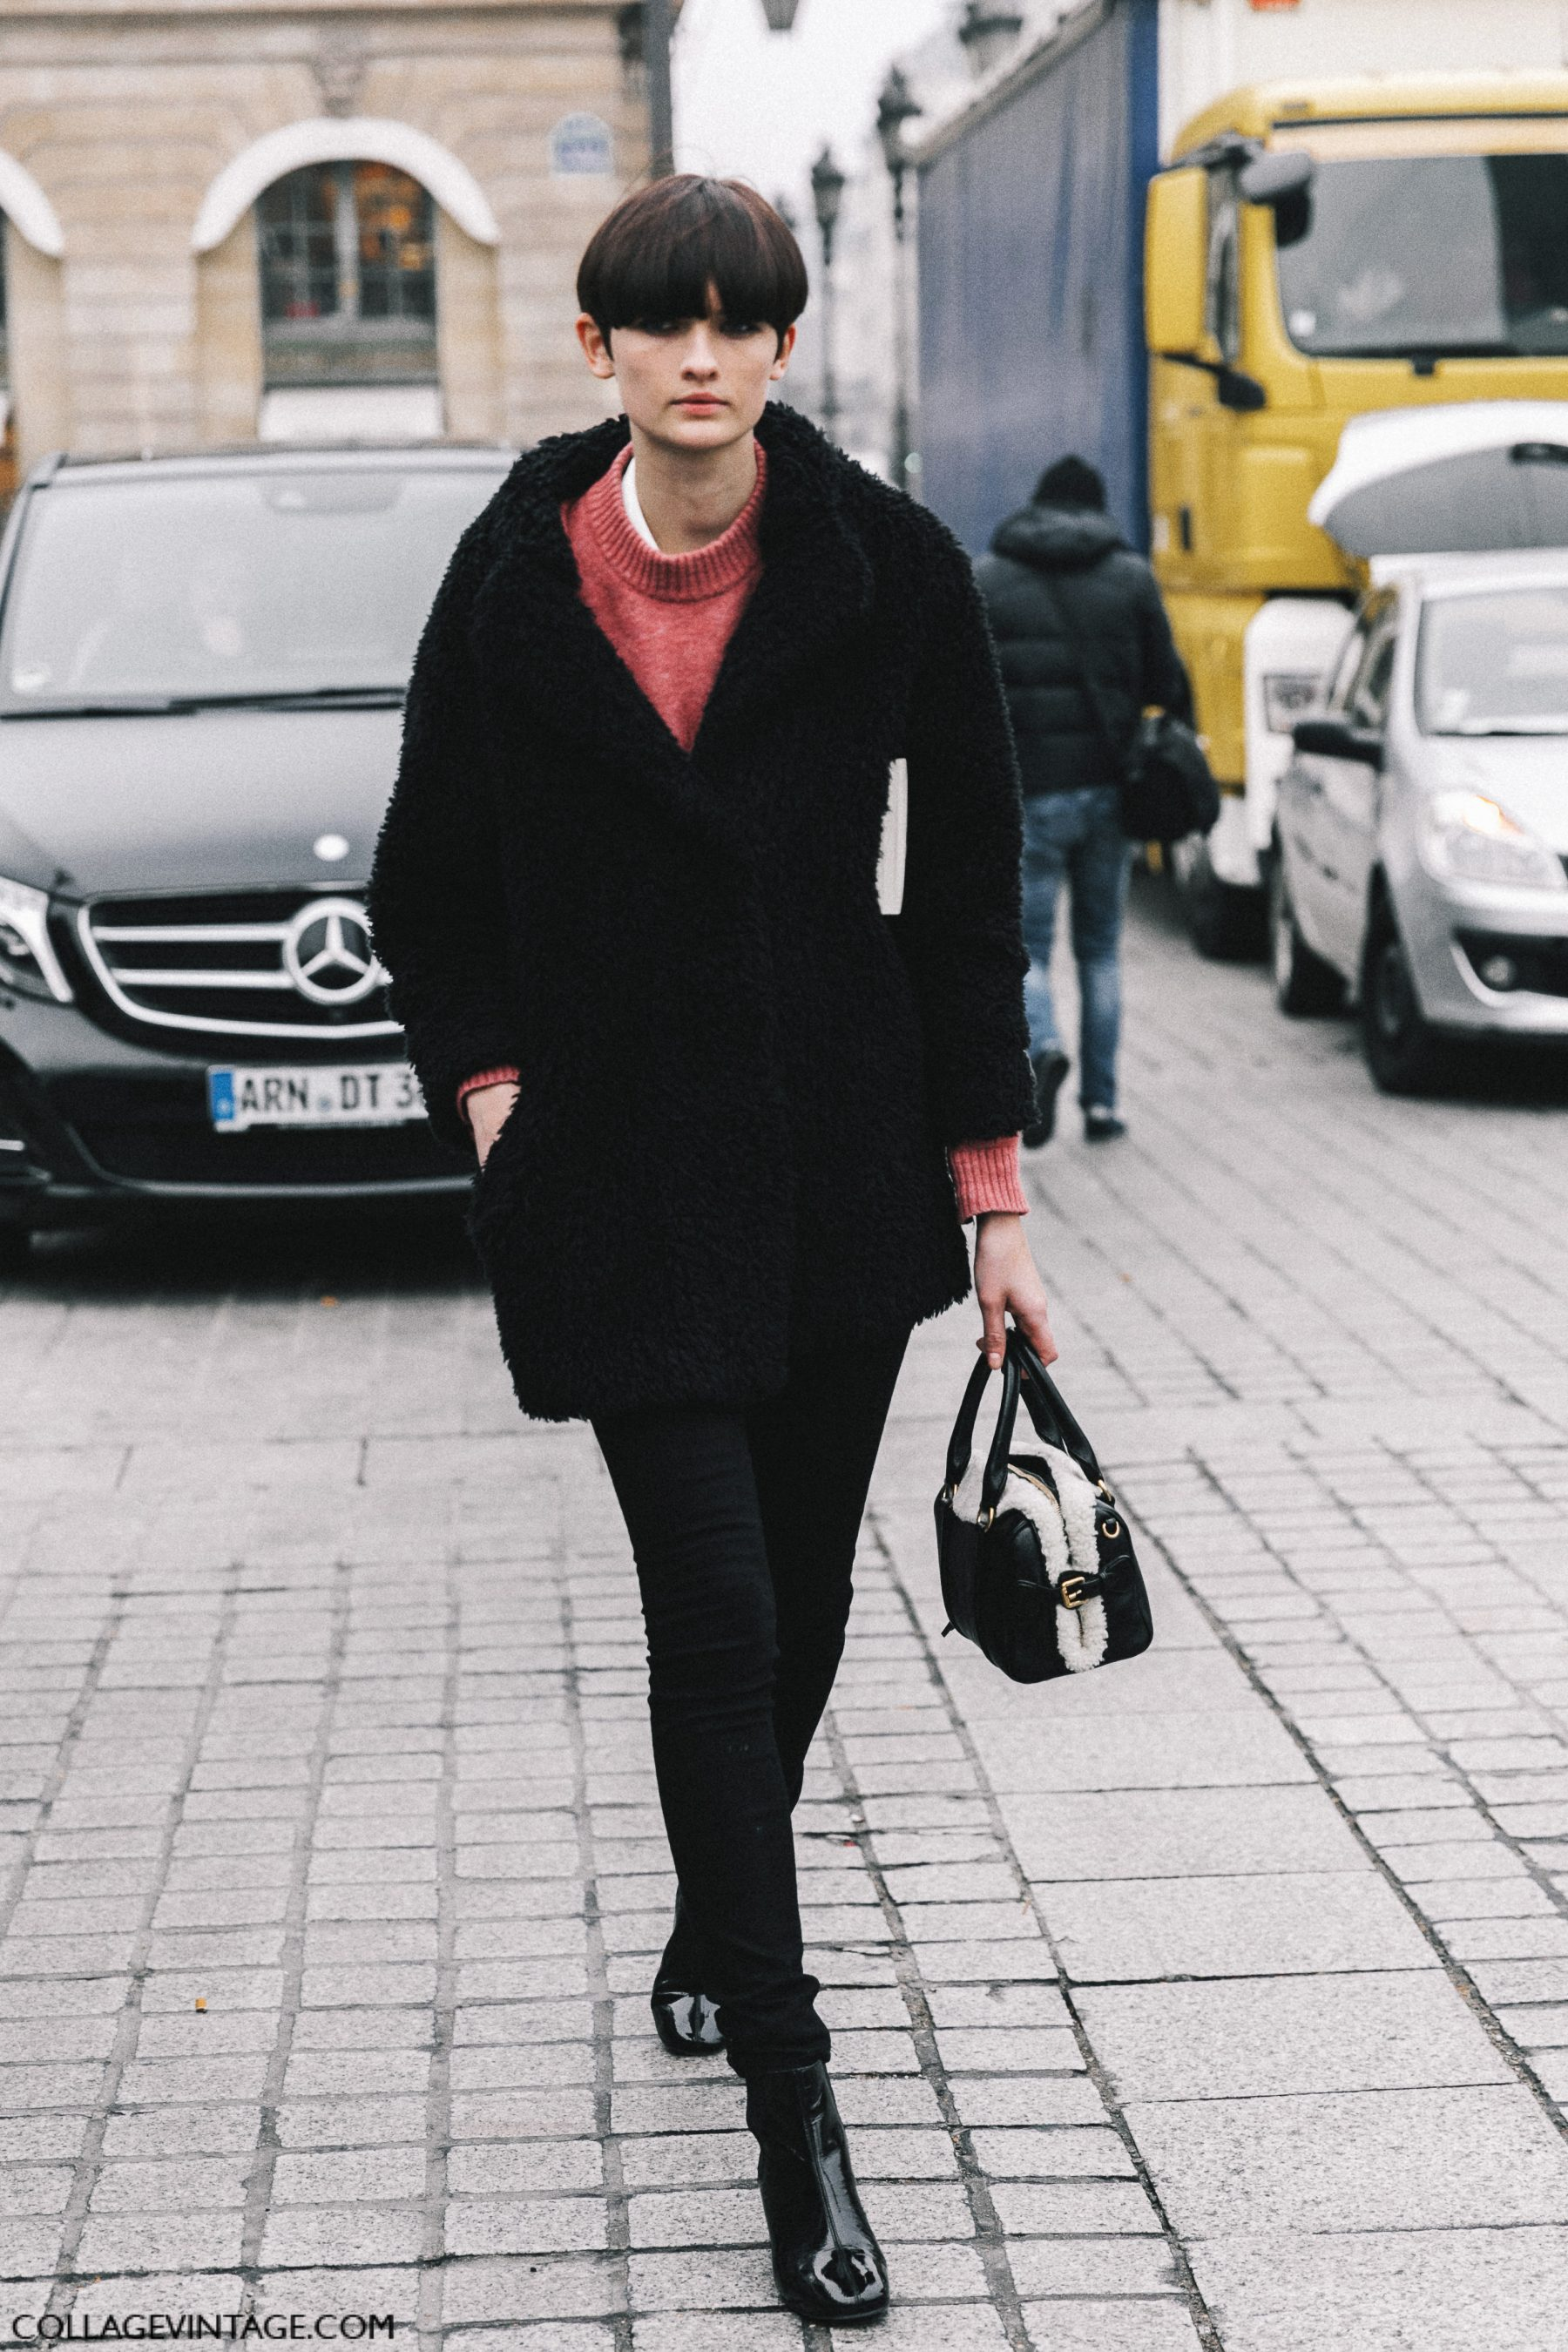 Couture_Paris_Fashion_Week-PFW-Street_Style-Dior-Outfit-Collage_Vintage-75-1800x2700